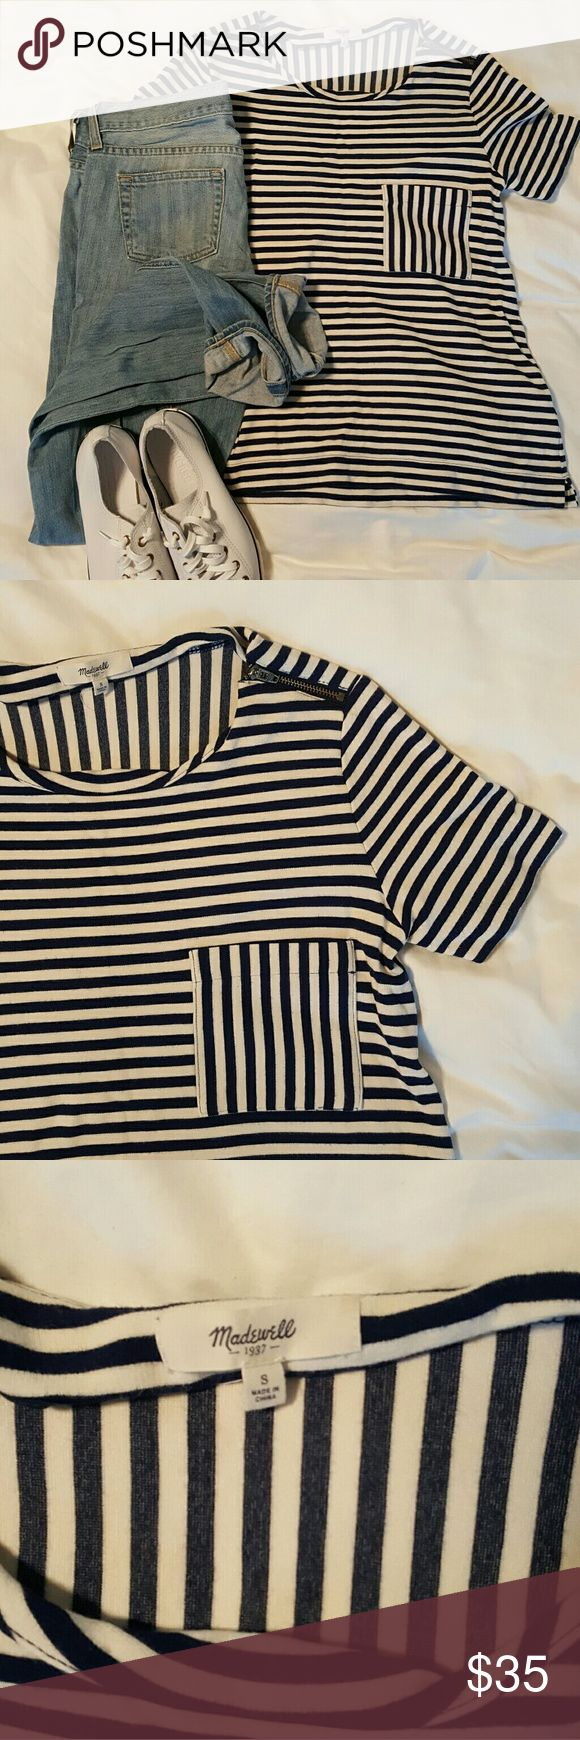 Madewell striped tee shirt This Madewell tee goes with everything! Cute witg blue and white stripes, a detail zipper at top, accent pocket and a pattern switch up in the back! Gently worn. Madewell Tops Tees - Short Sleeve